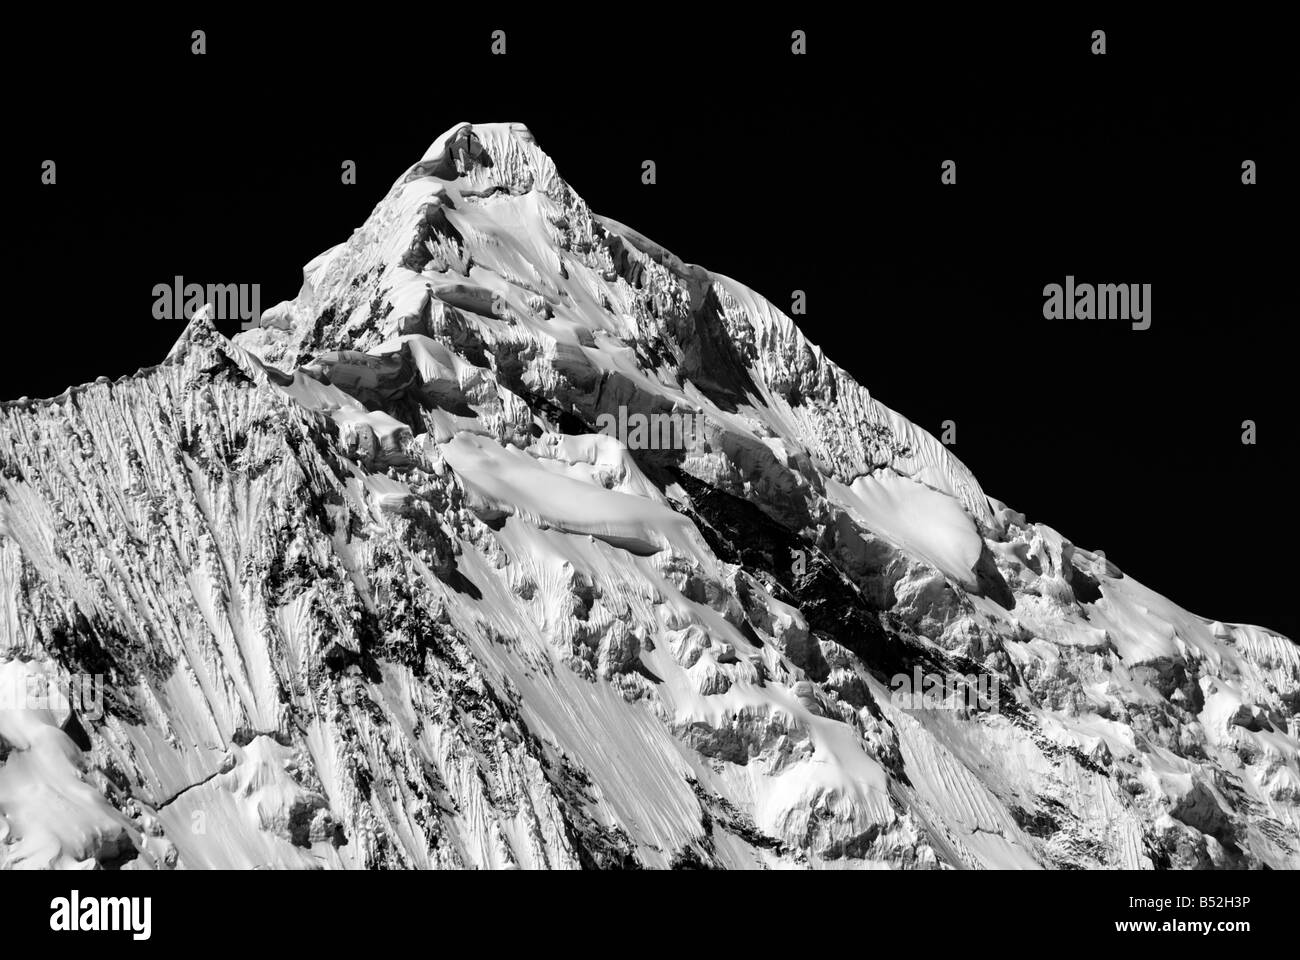 West face of Chopicalqui 6,354m, Cordillera Blanca, Peruvian Andes, Peru - Stock Image